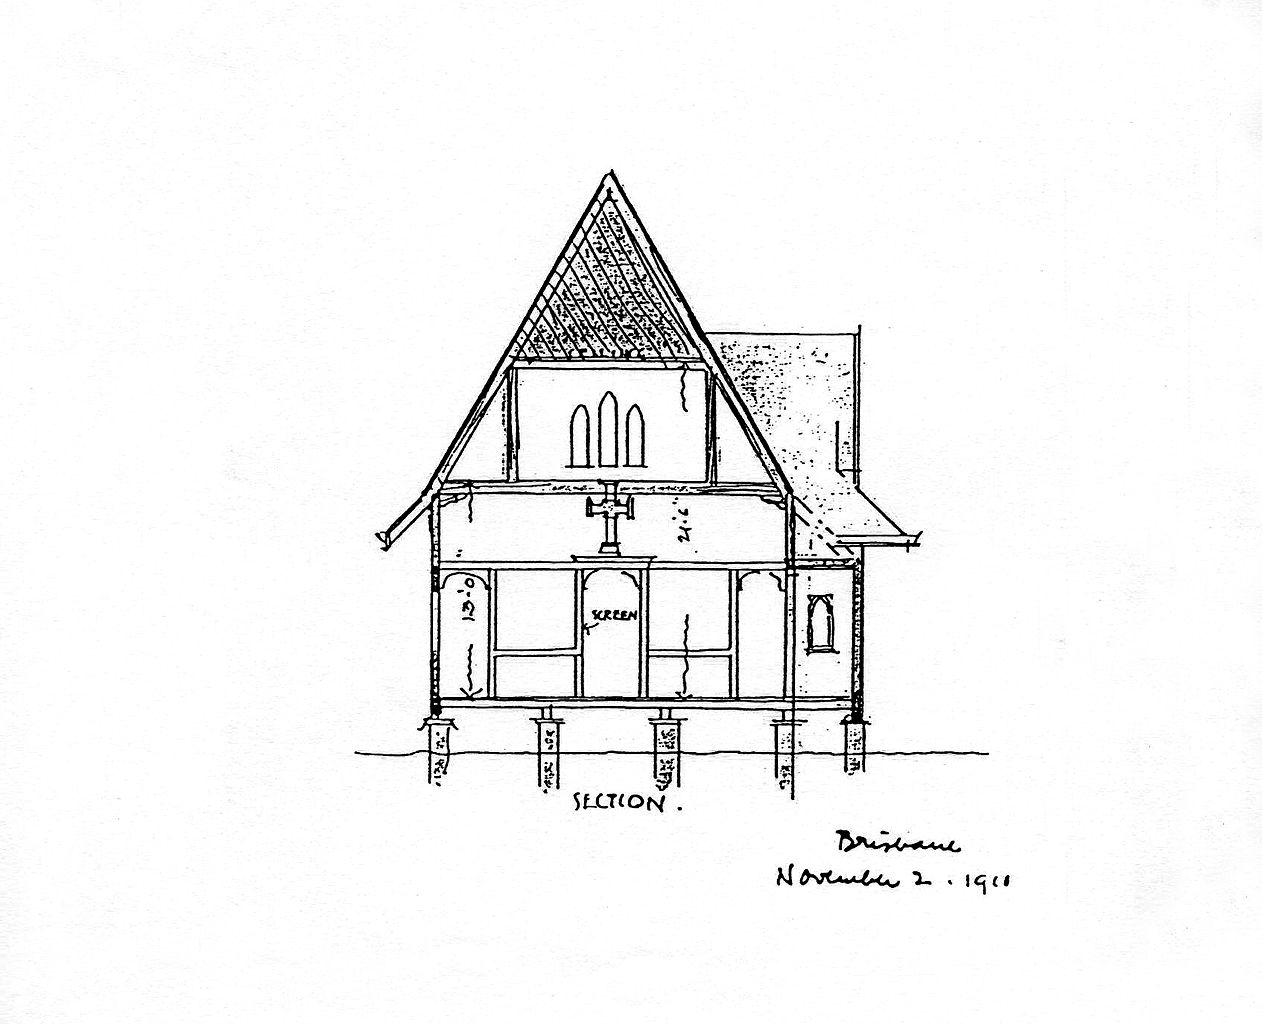 File:Robin Dods' architectural drawing of St. Andrew's